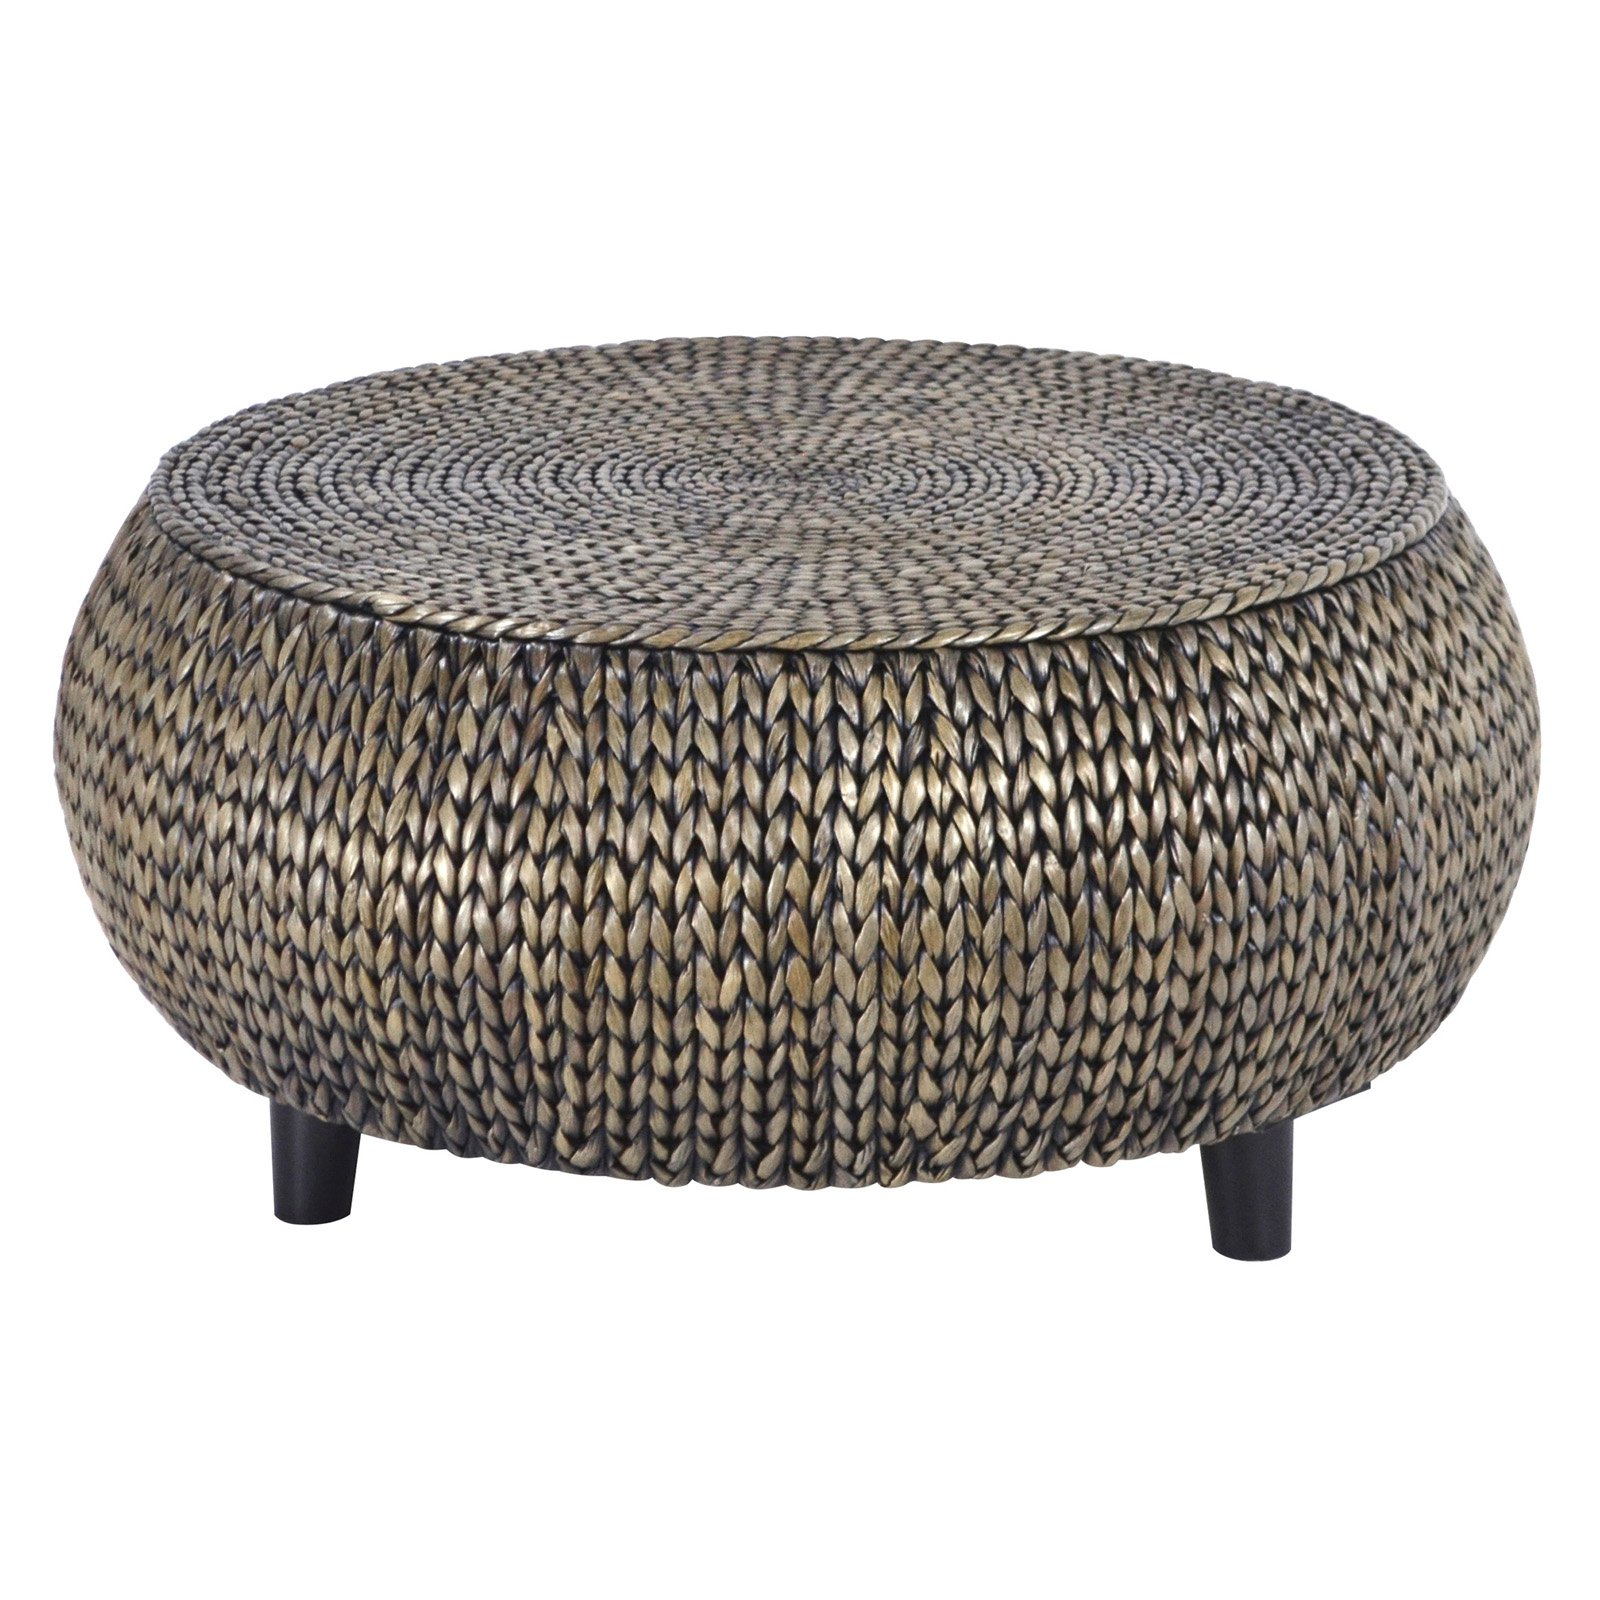 - Gallerie Decor Bali Breeze Low Round Accent Table - Walmart.com